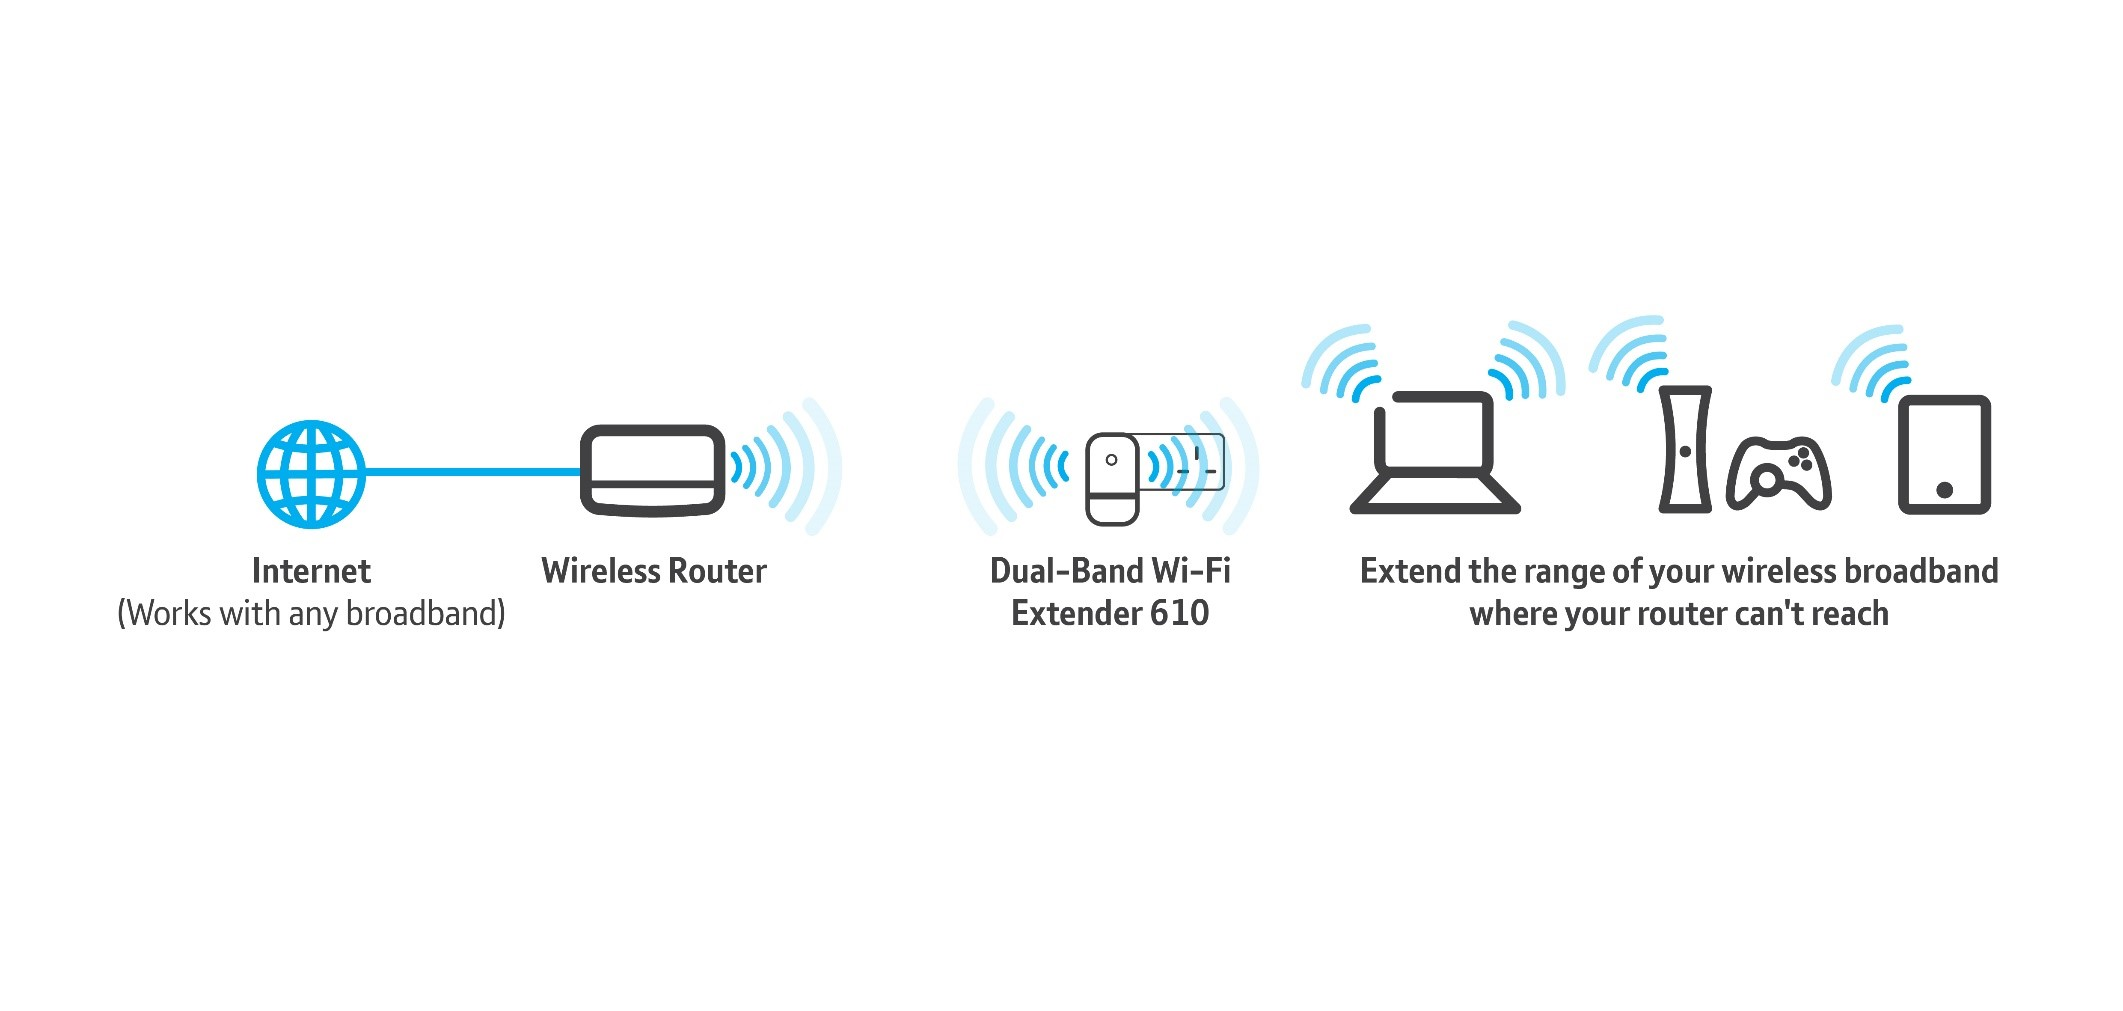 how to set a second router to extend internet